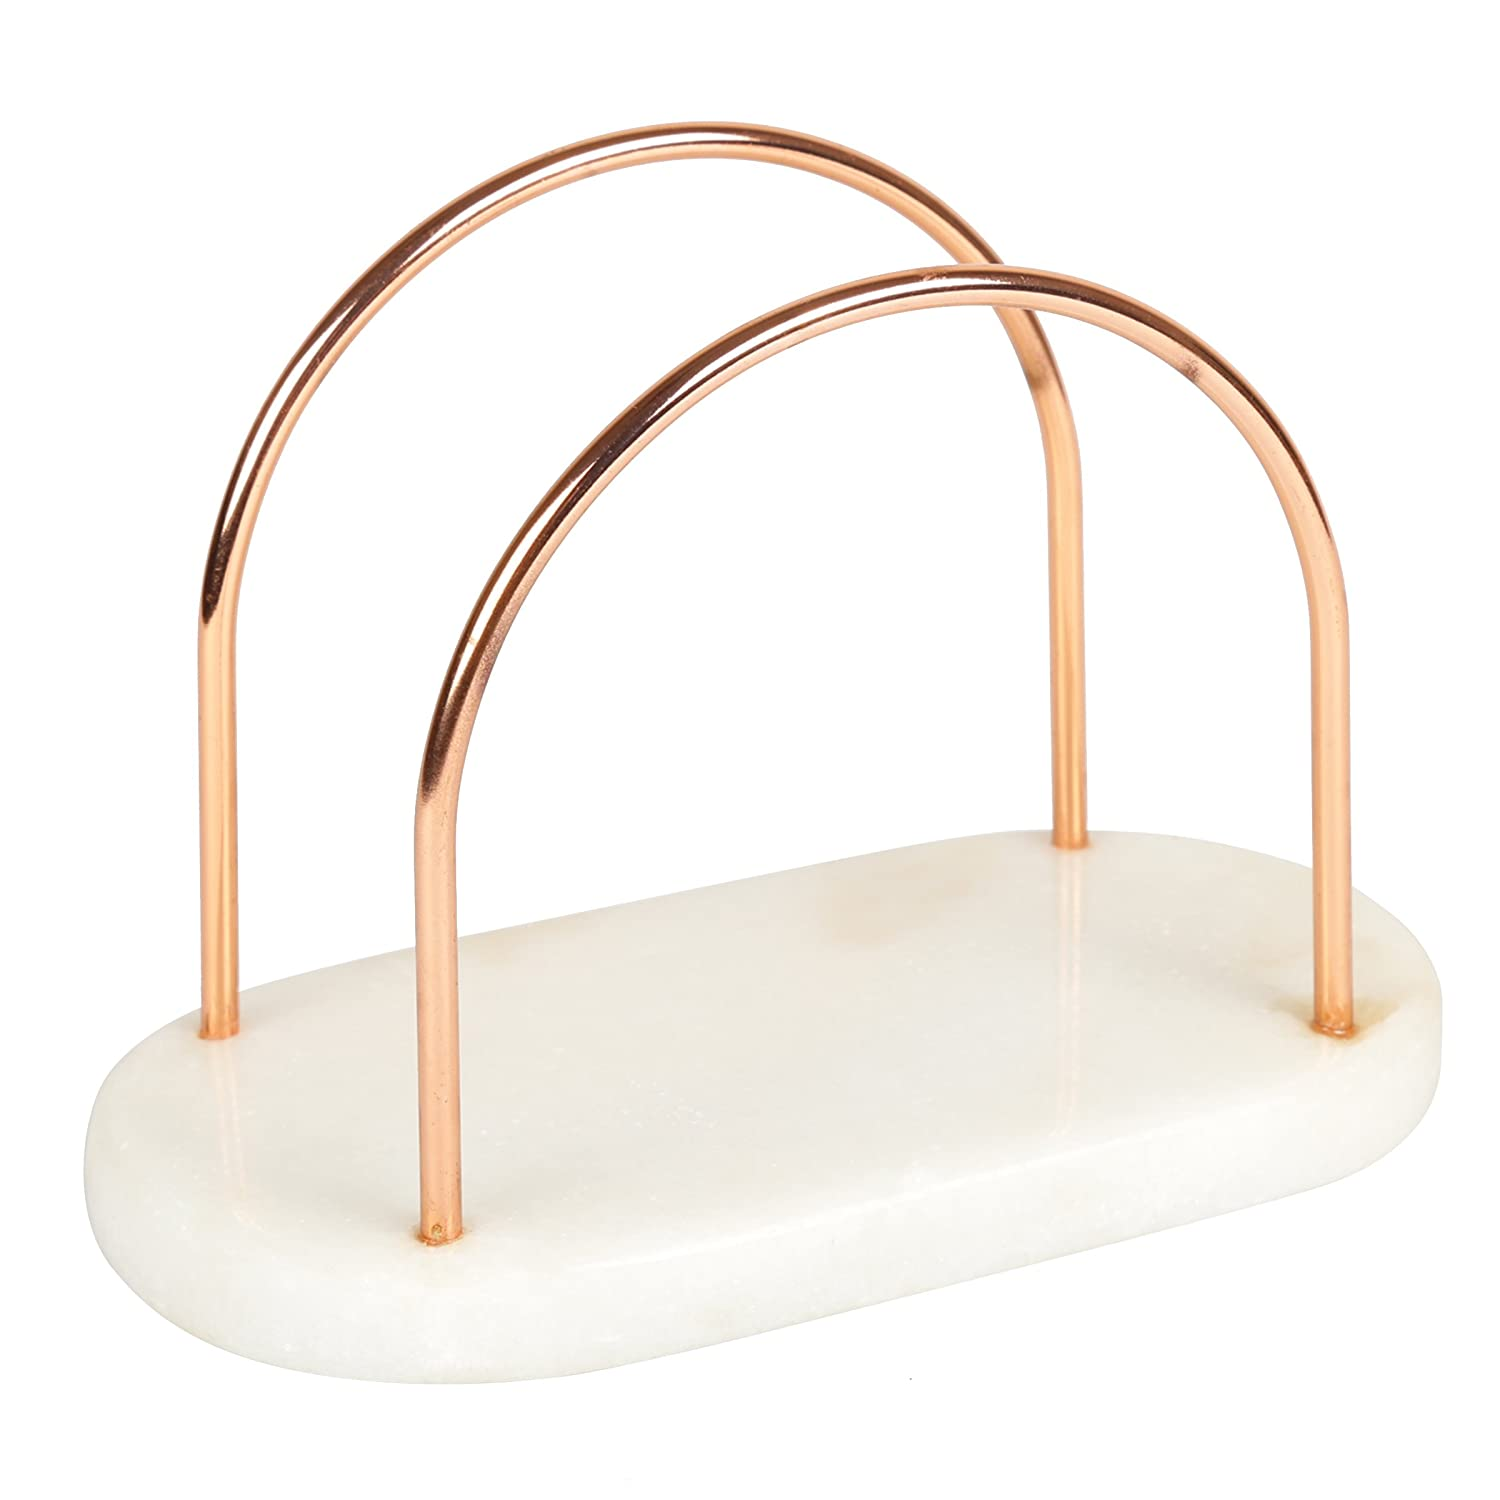 "Creative Home 50241 Natural Marble and Wire Napkin Holder with Copper Finish, 7-1/2"" x 4"" x 5-1/8"" H, Off-White (patterns may very)"